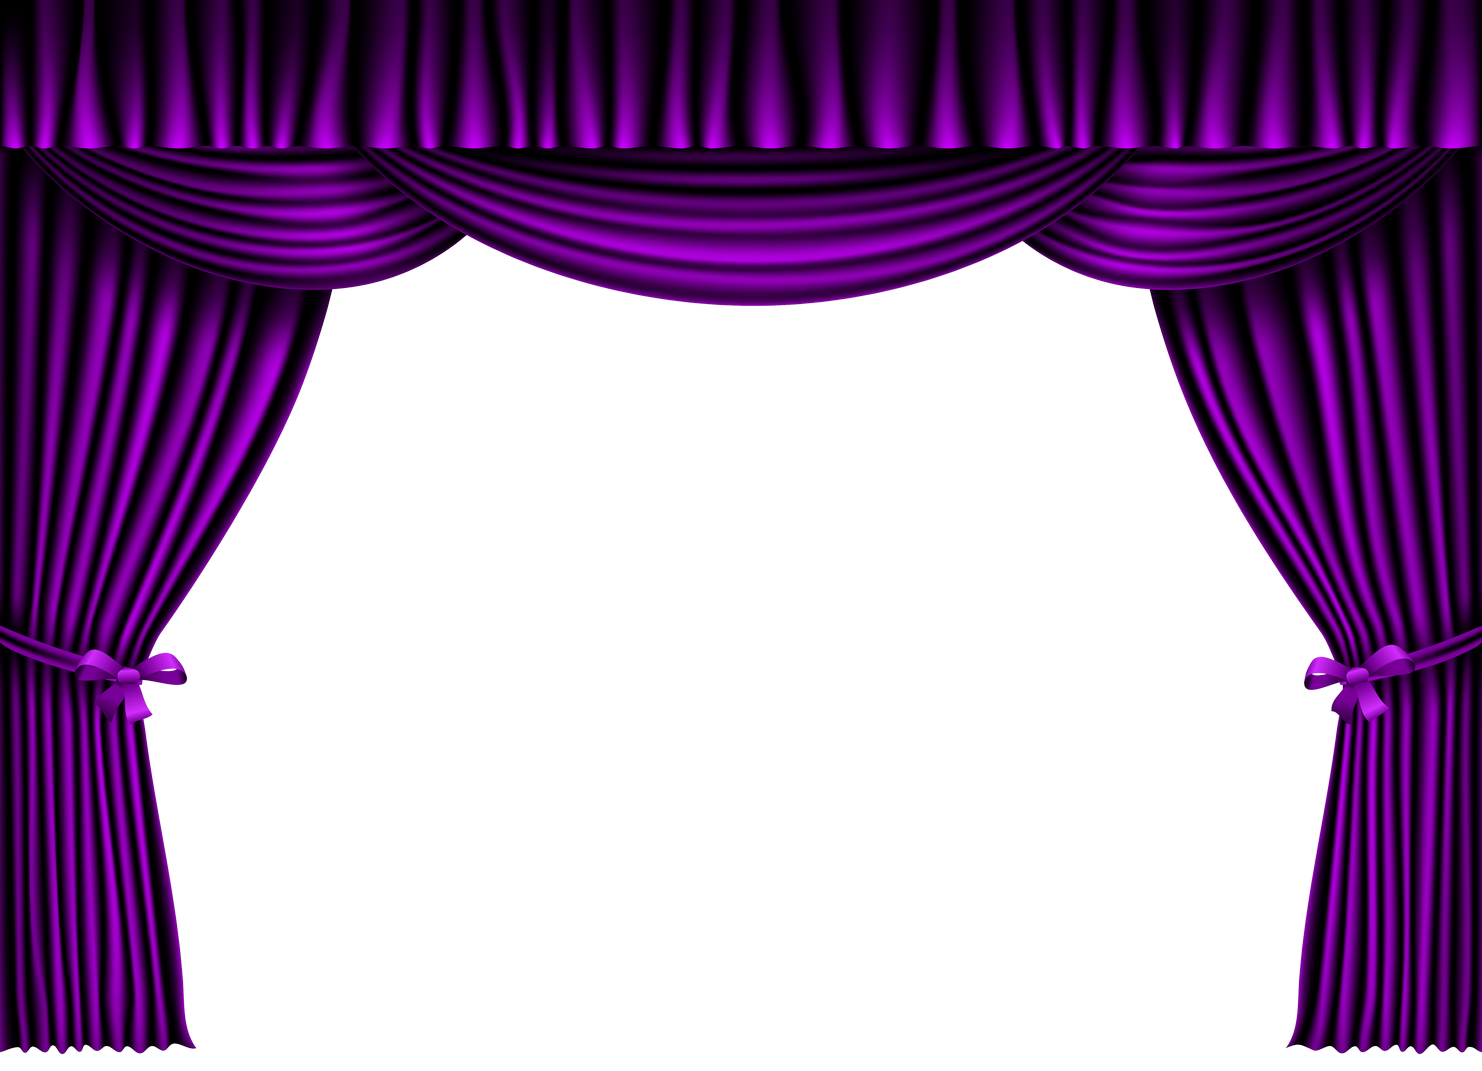 Pin by next on. Curtains clipart curtain design